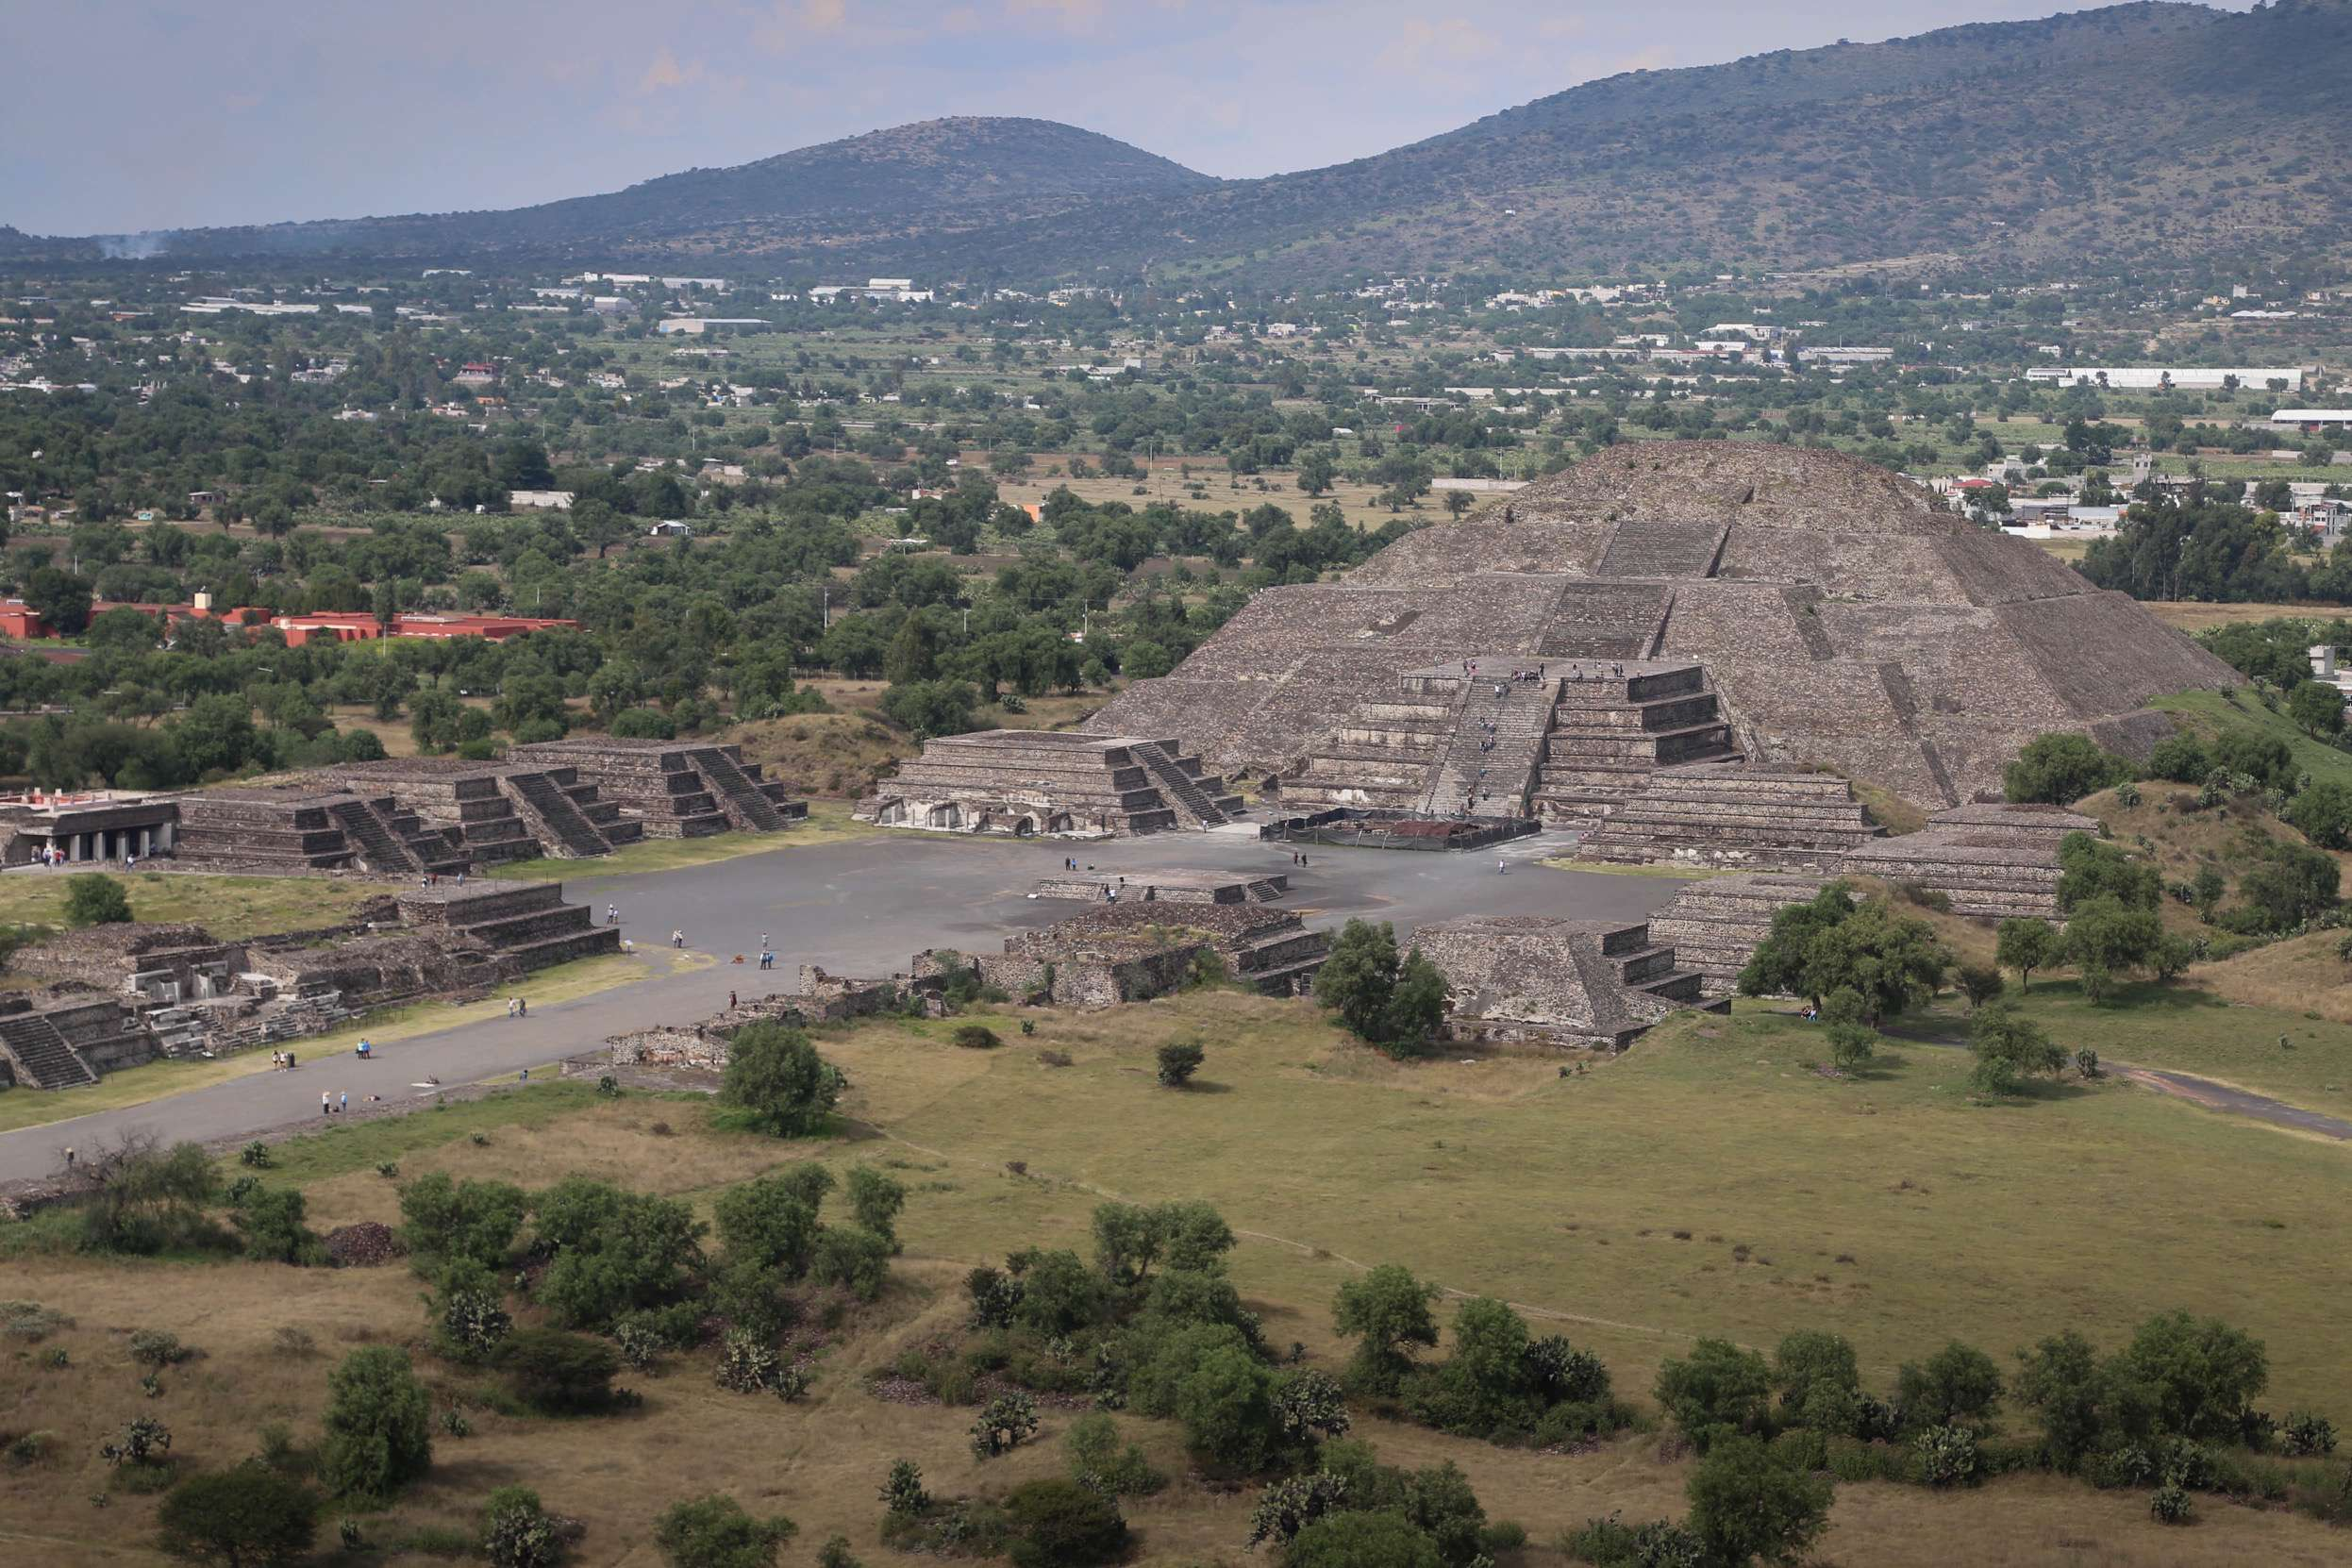 From the top of the Pyramid of the Sun, the Pyramid of the moon stands to the north, at the end of the Avenue of the Dead at Teotihuacan.